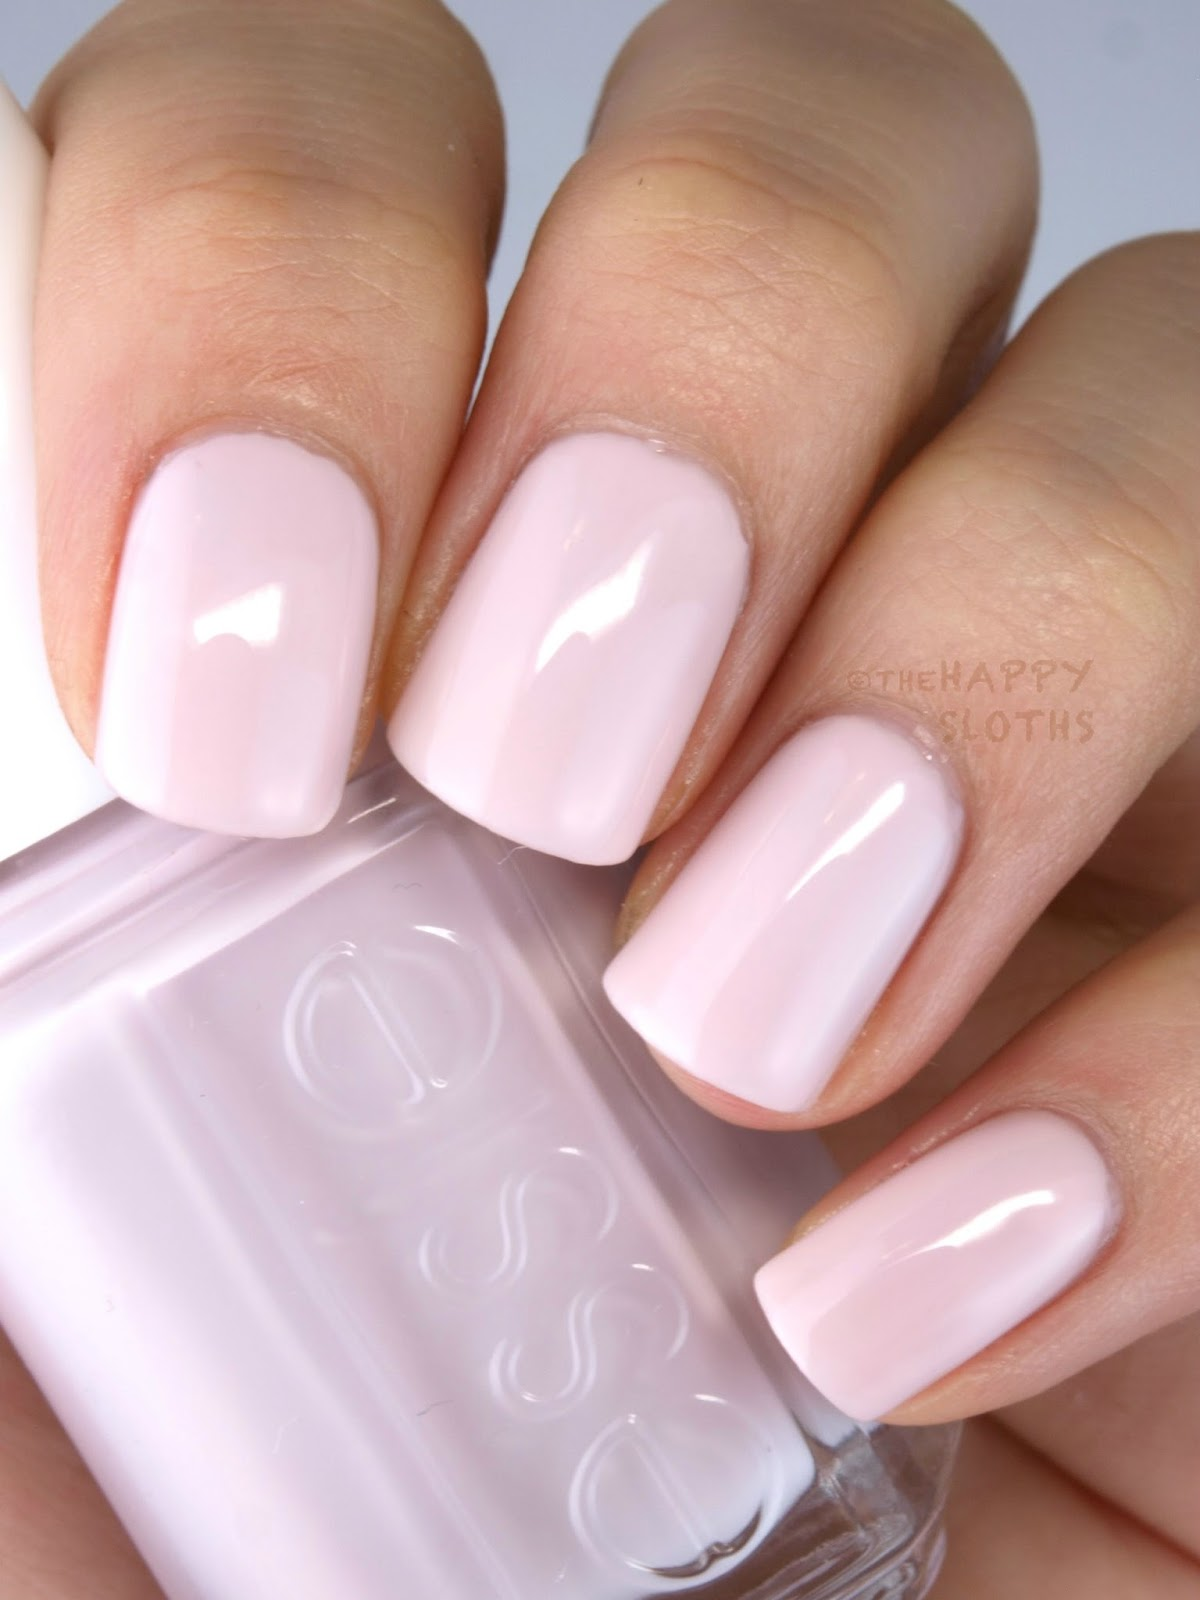 Wedding Nail Art Manicure Ideas From Pinterest: THINGS {SHE} LOVES: June 2015